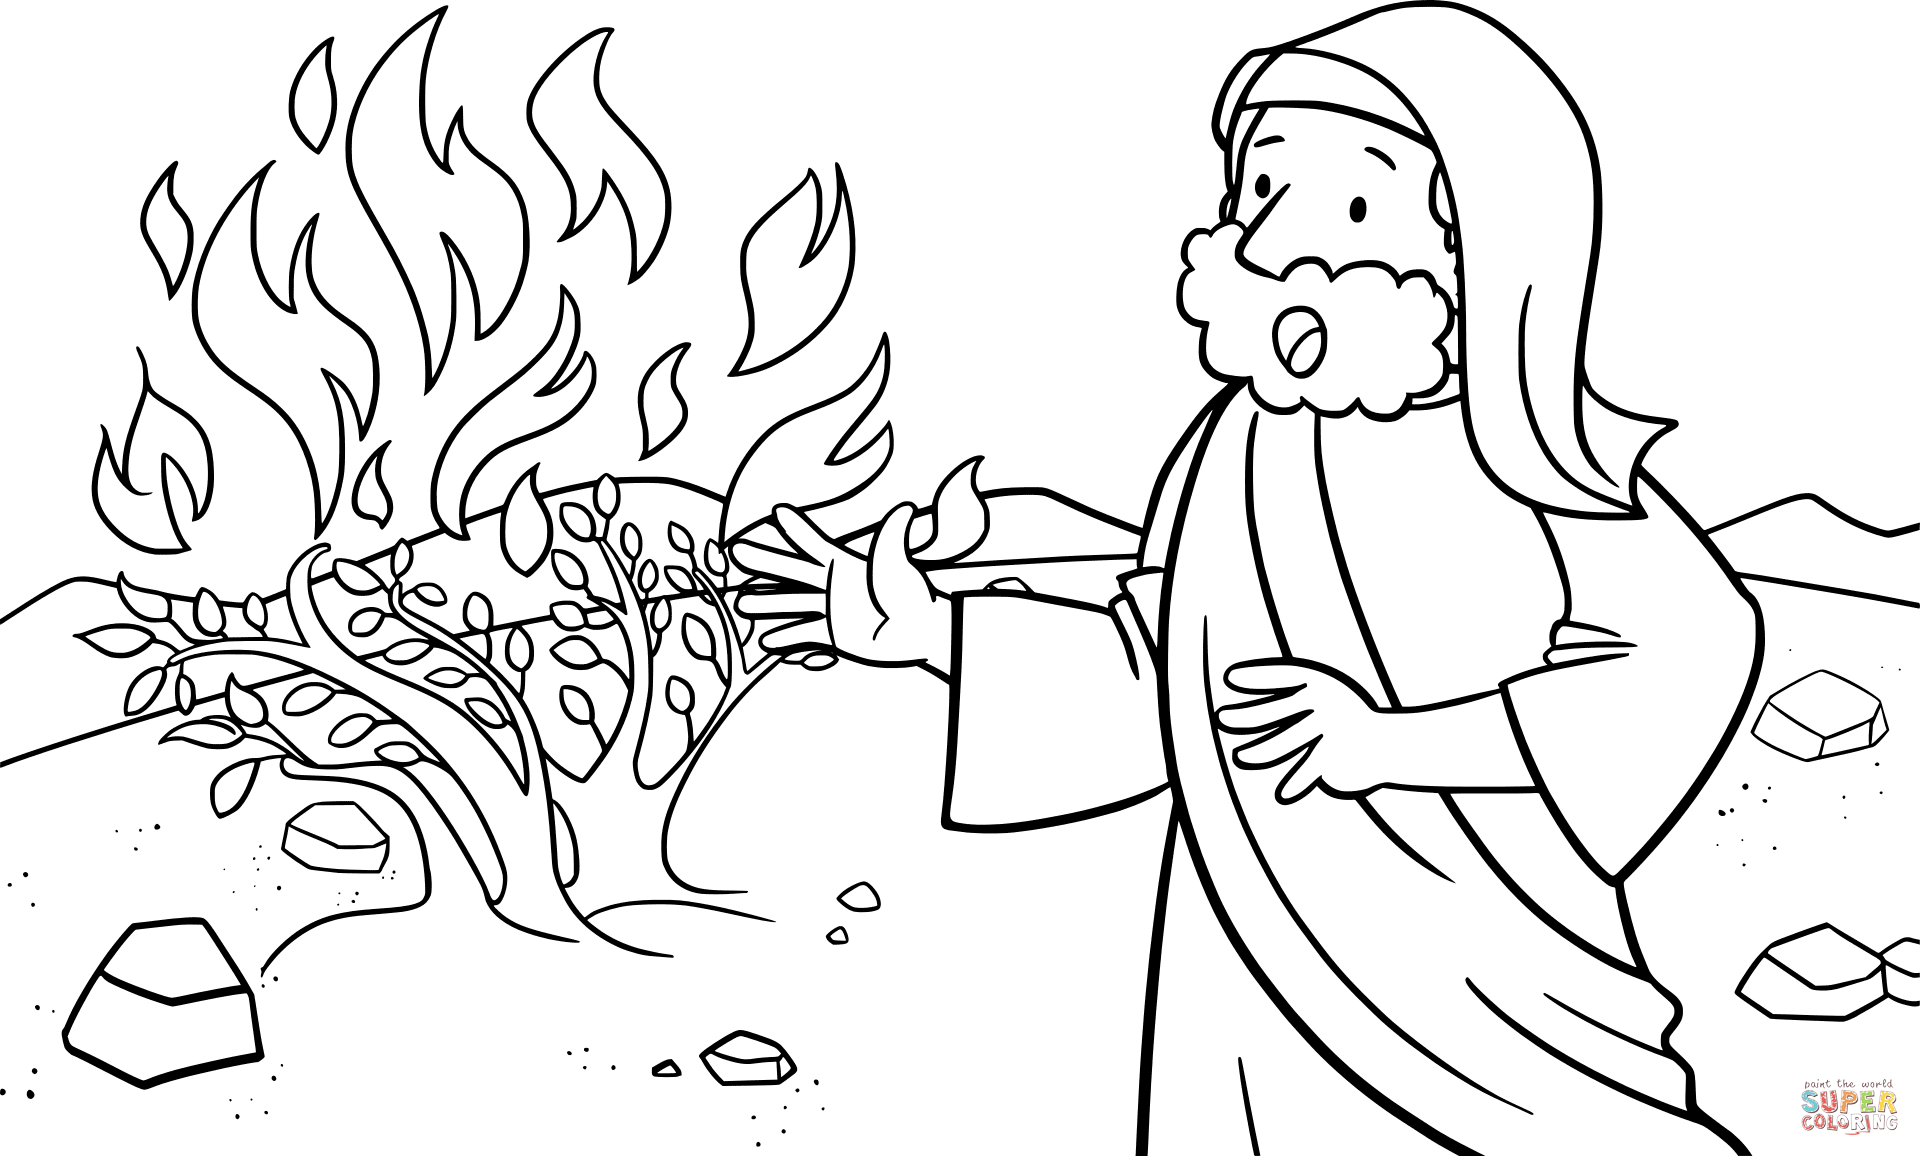 moses burning bush printable coloring pages | Moses Talking to God on the Mount Horeb coloring page from ...